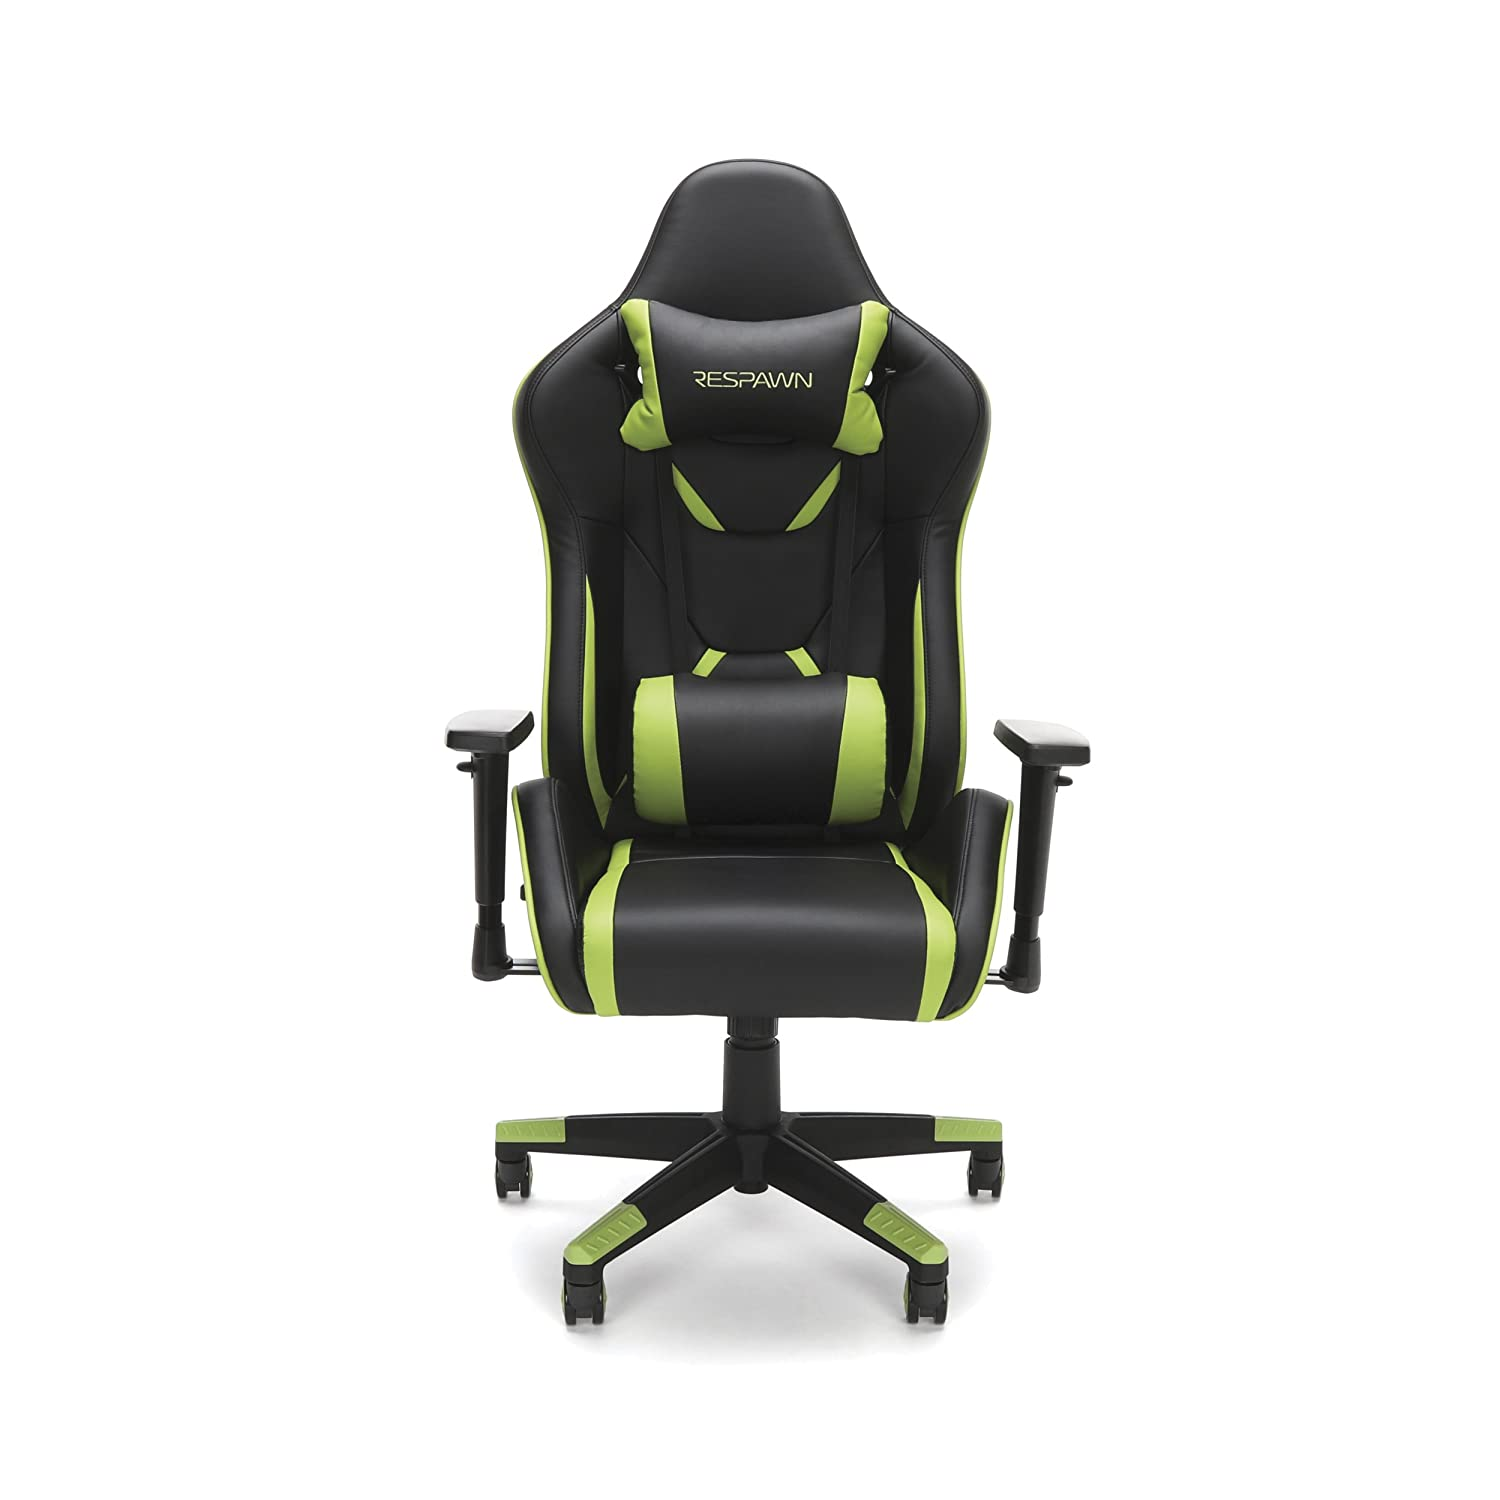 Amazon.com: RESPAWN-120 Racing Style Gaming Chair - Reclining Ergonomic Leather Chair, Office or Gaming Chair (RSP-120-GRN): Kitchen & Dining